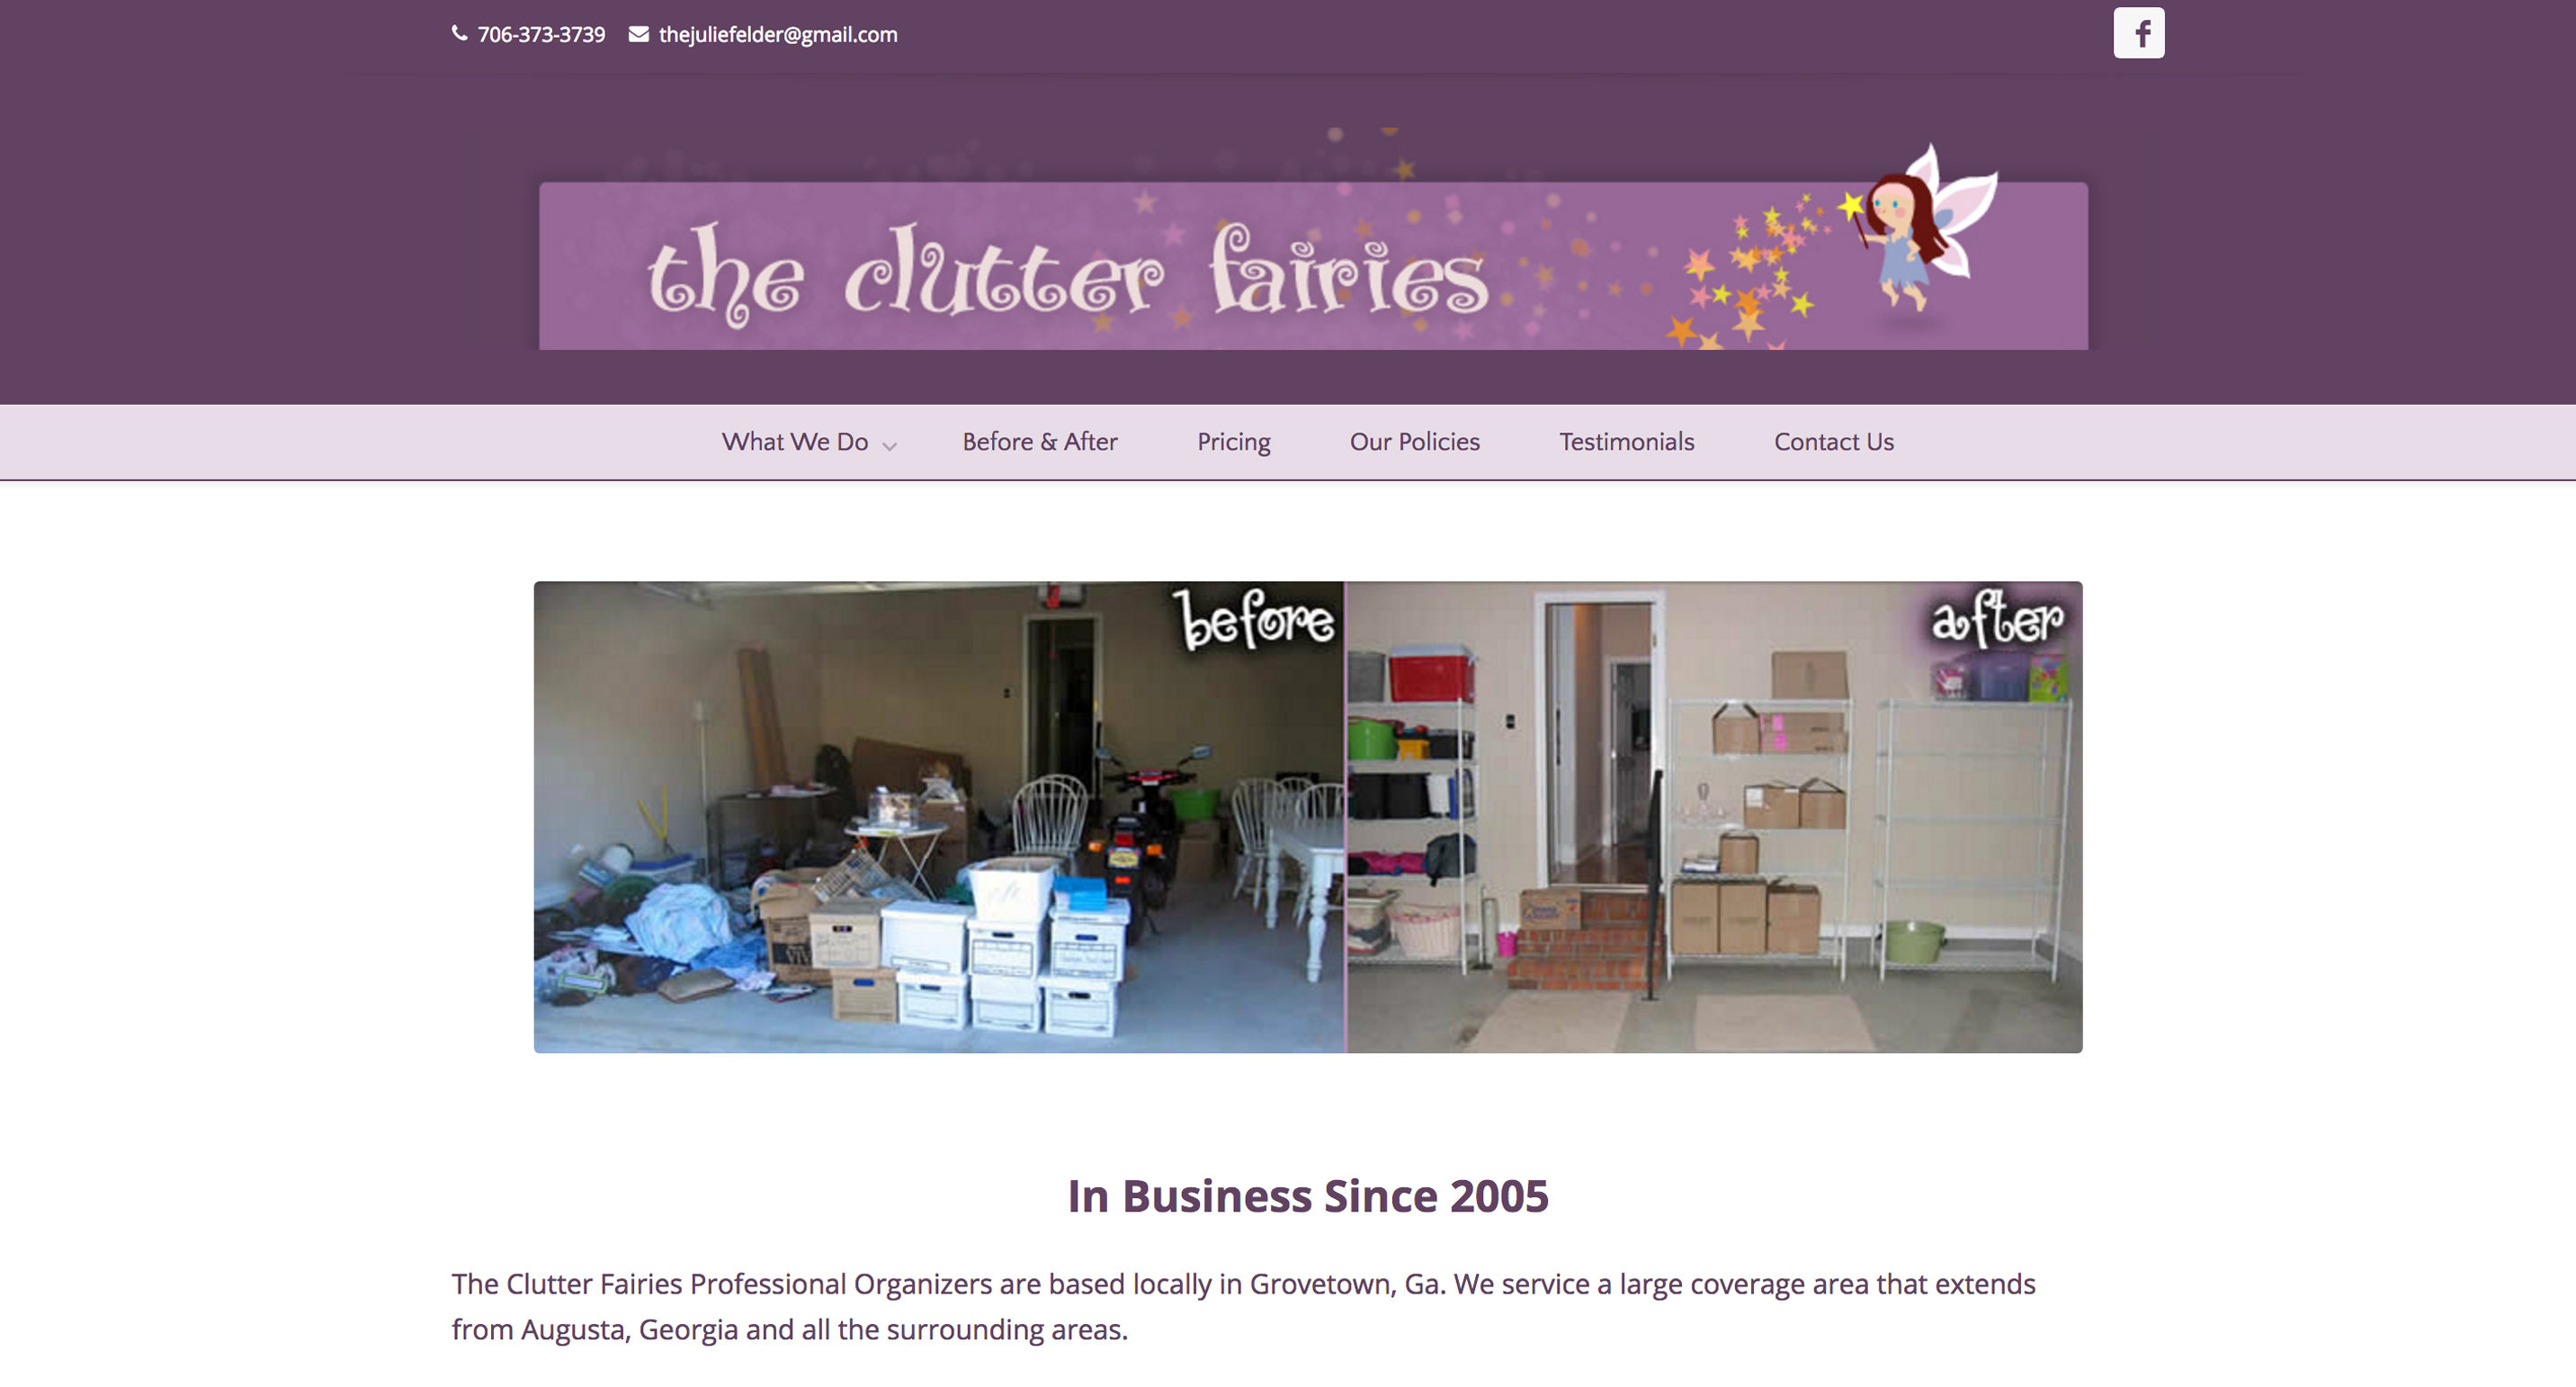 The Clutter Fairies